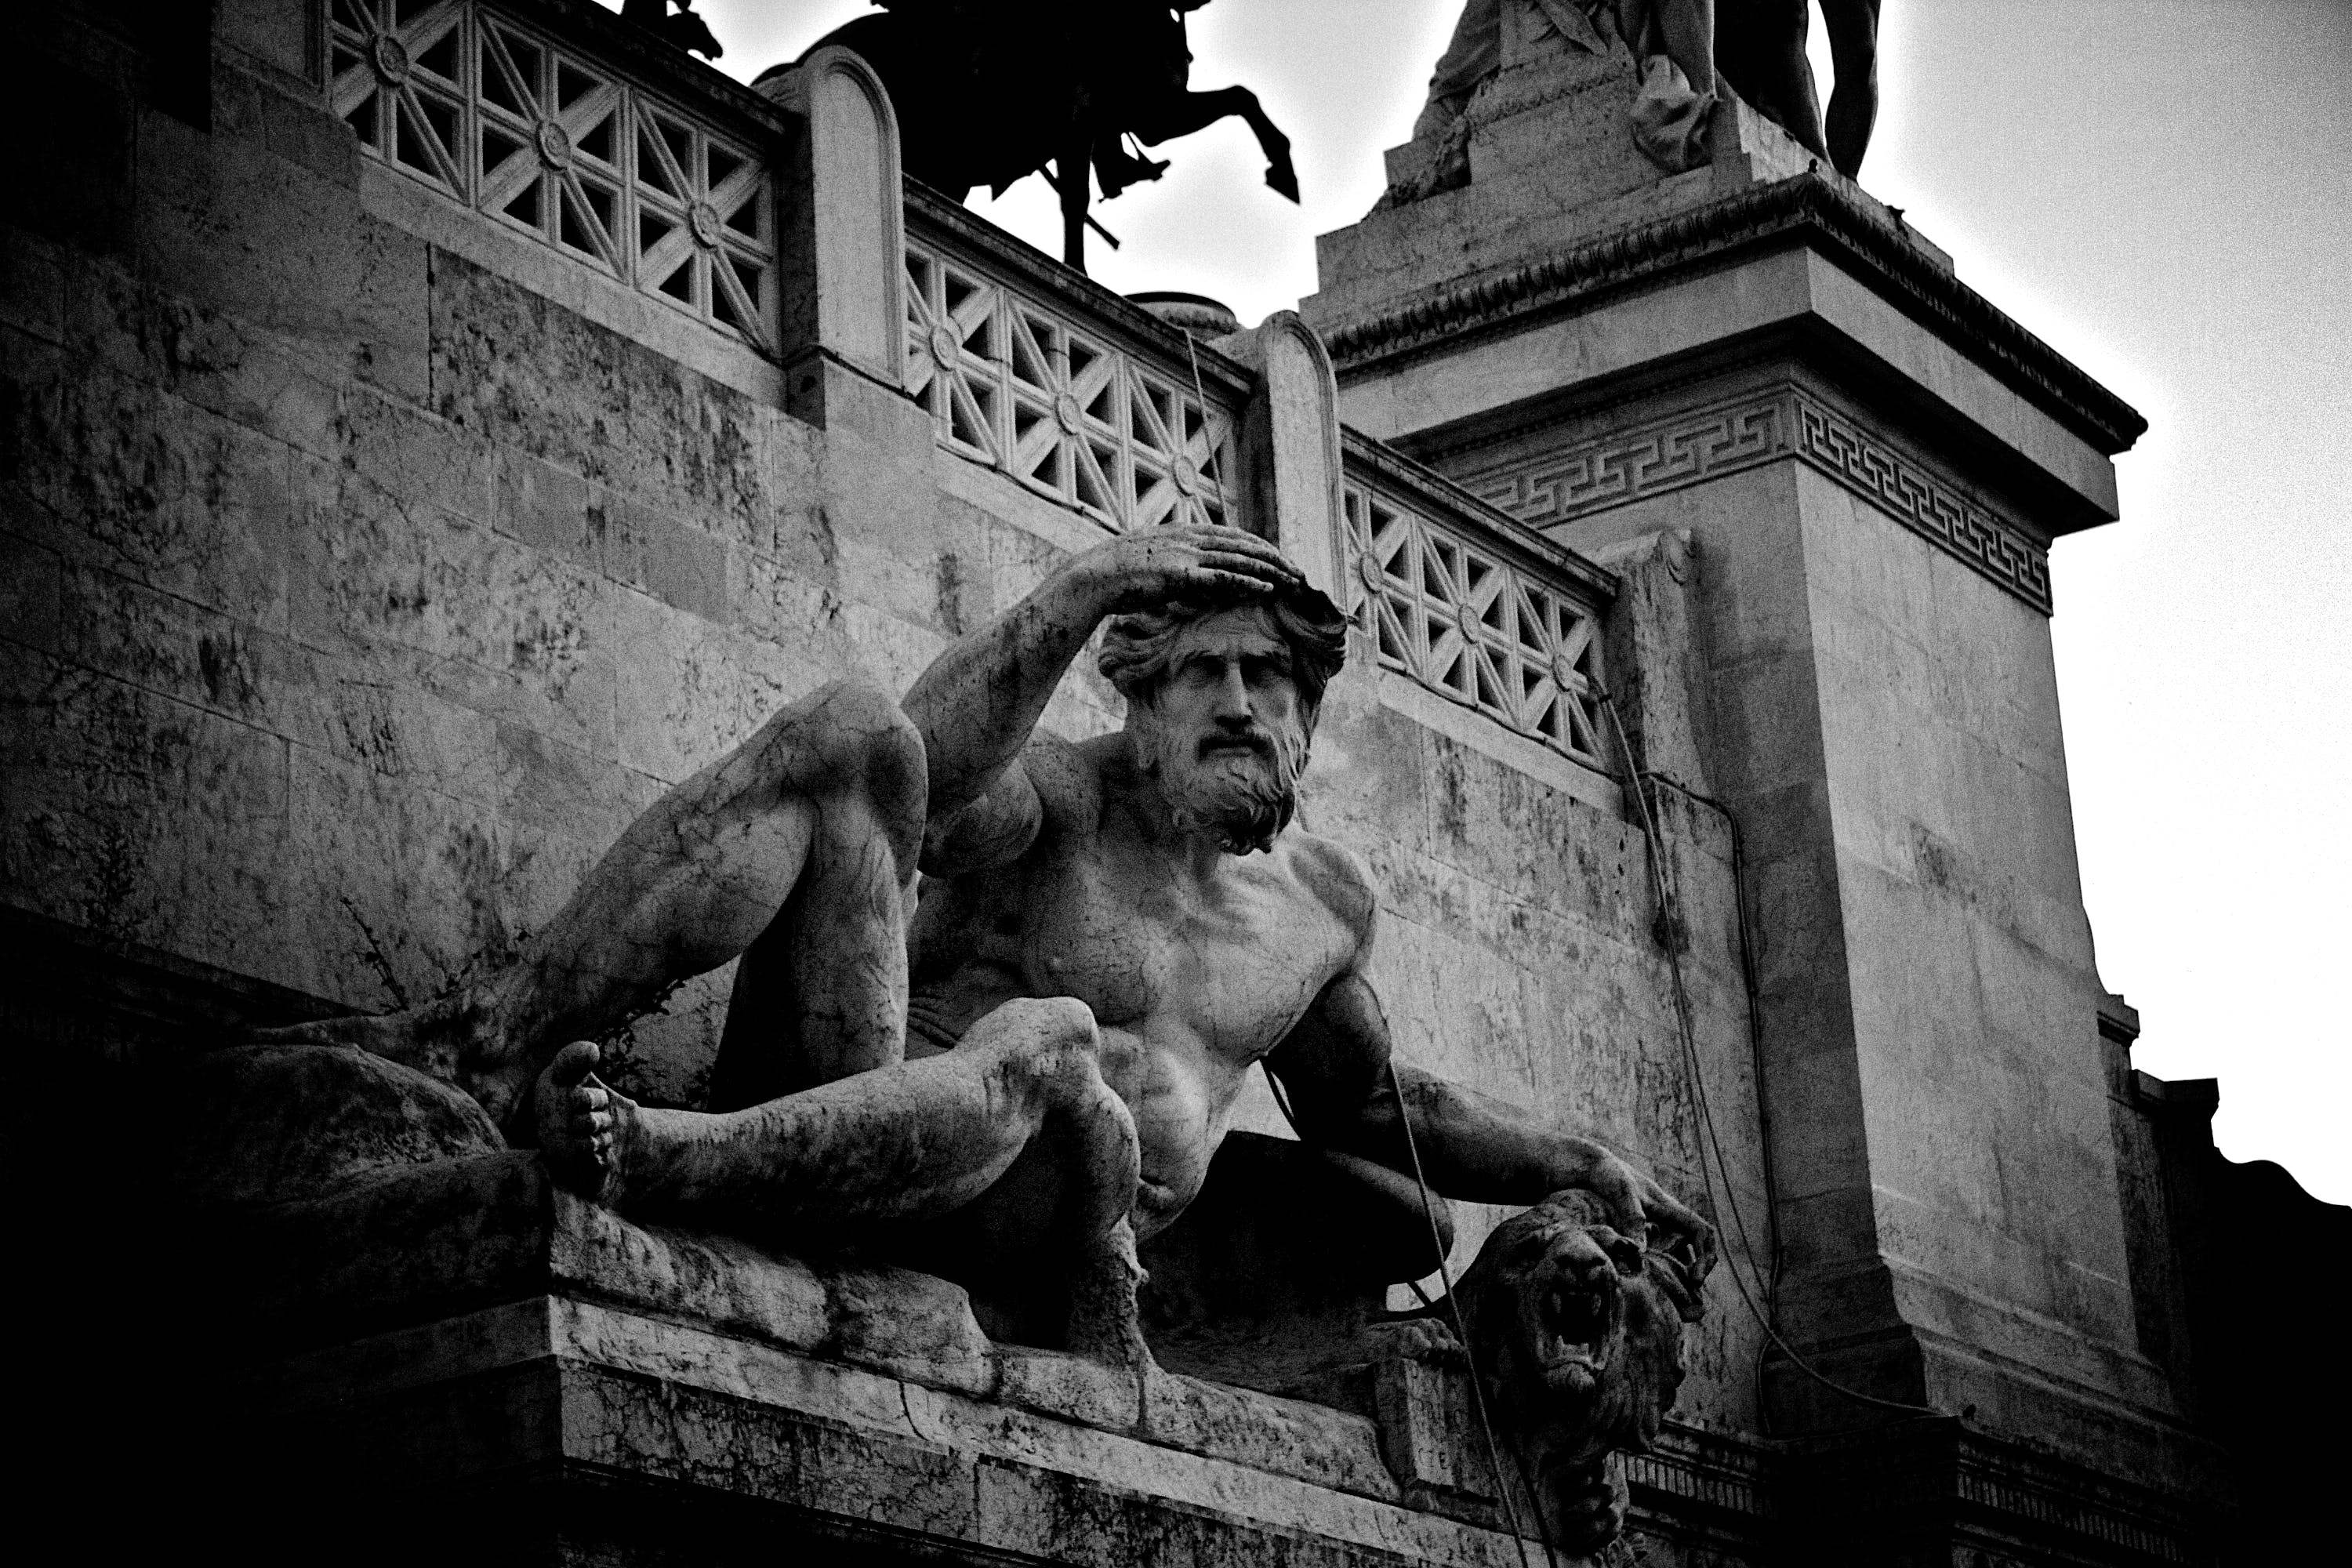 Grayscale Photography of Man Statue